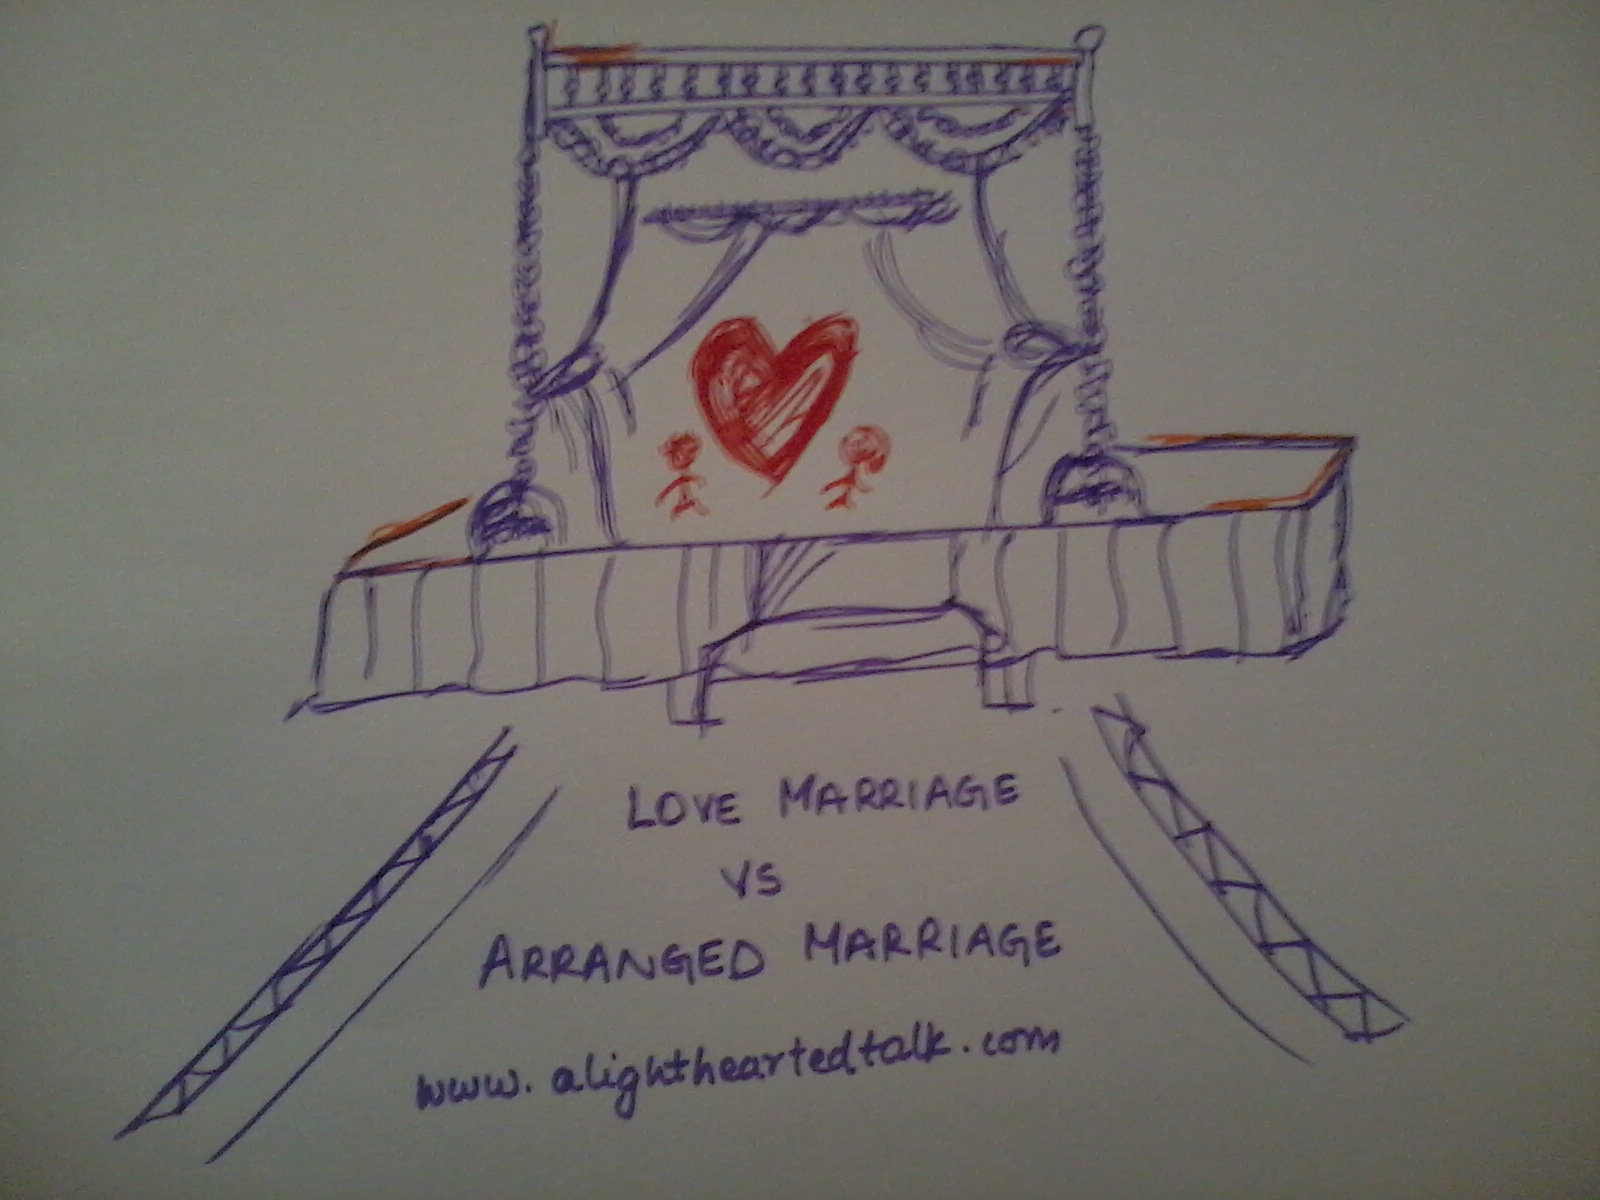 love marriage vs arranged marriage essay arranged marriage vs love a light hearted talk love marriages vs arranged marriagesthis post won a rs snapdeal voucher in